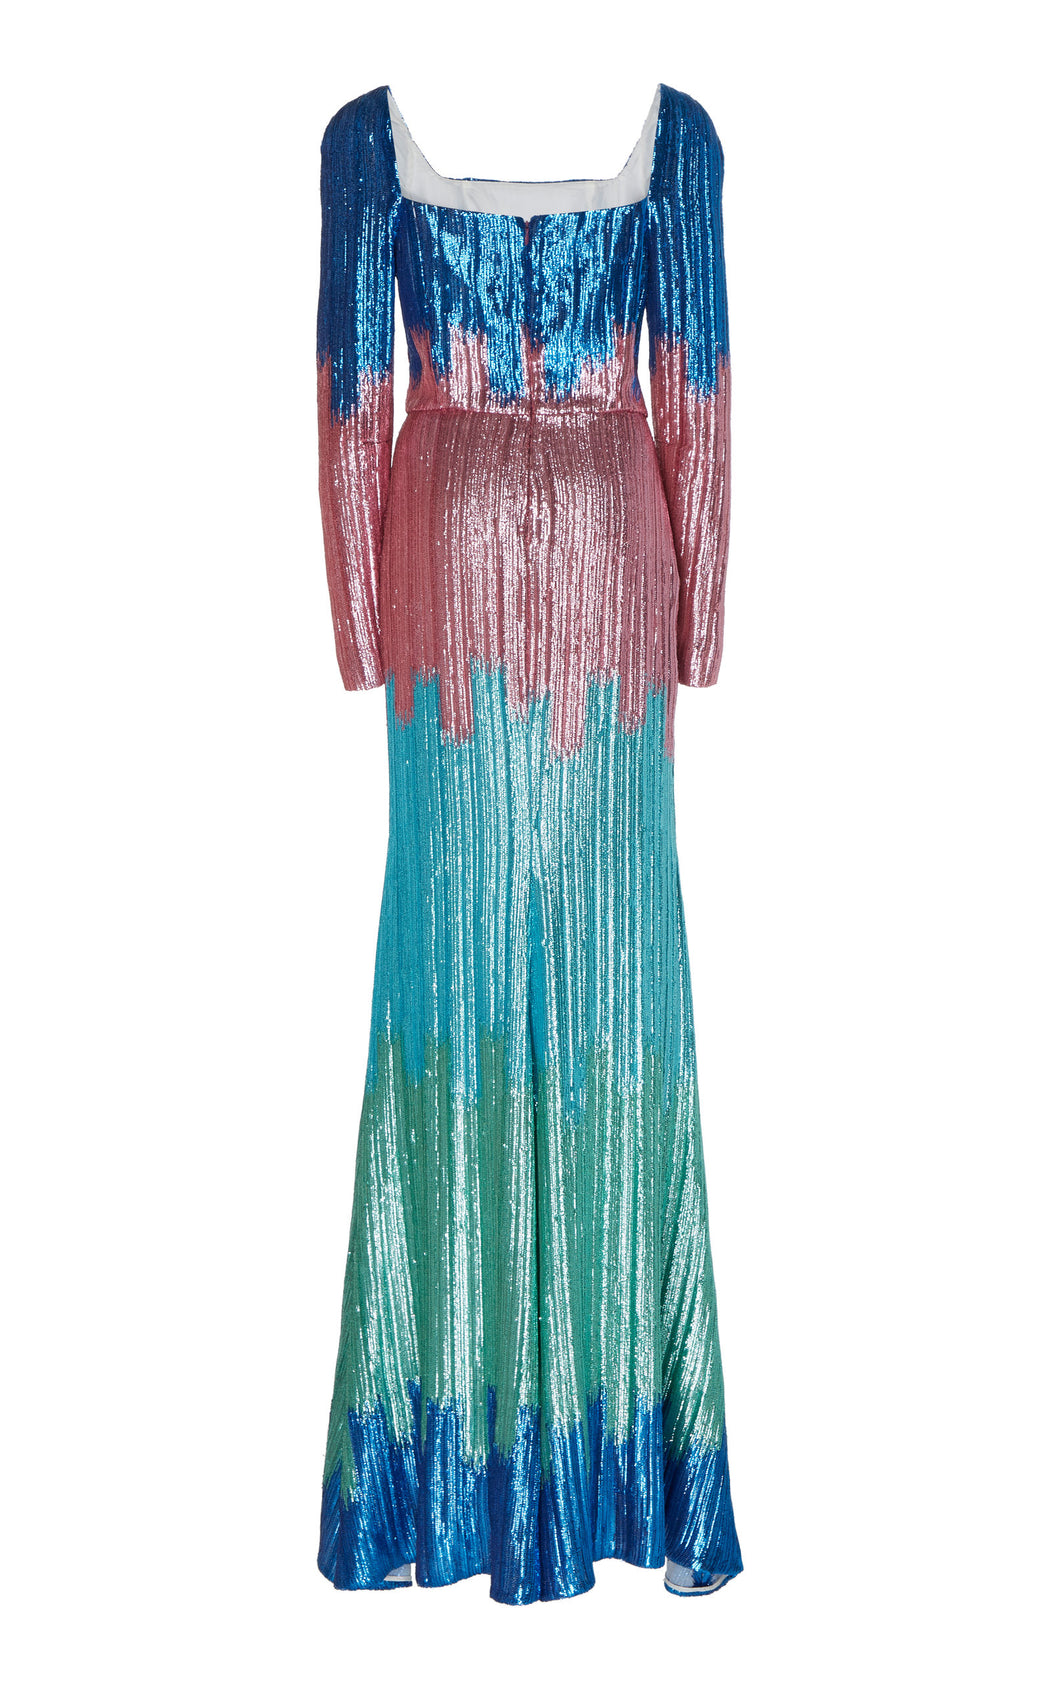 Elizabeth Ombre Sequin Dress